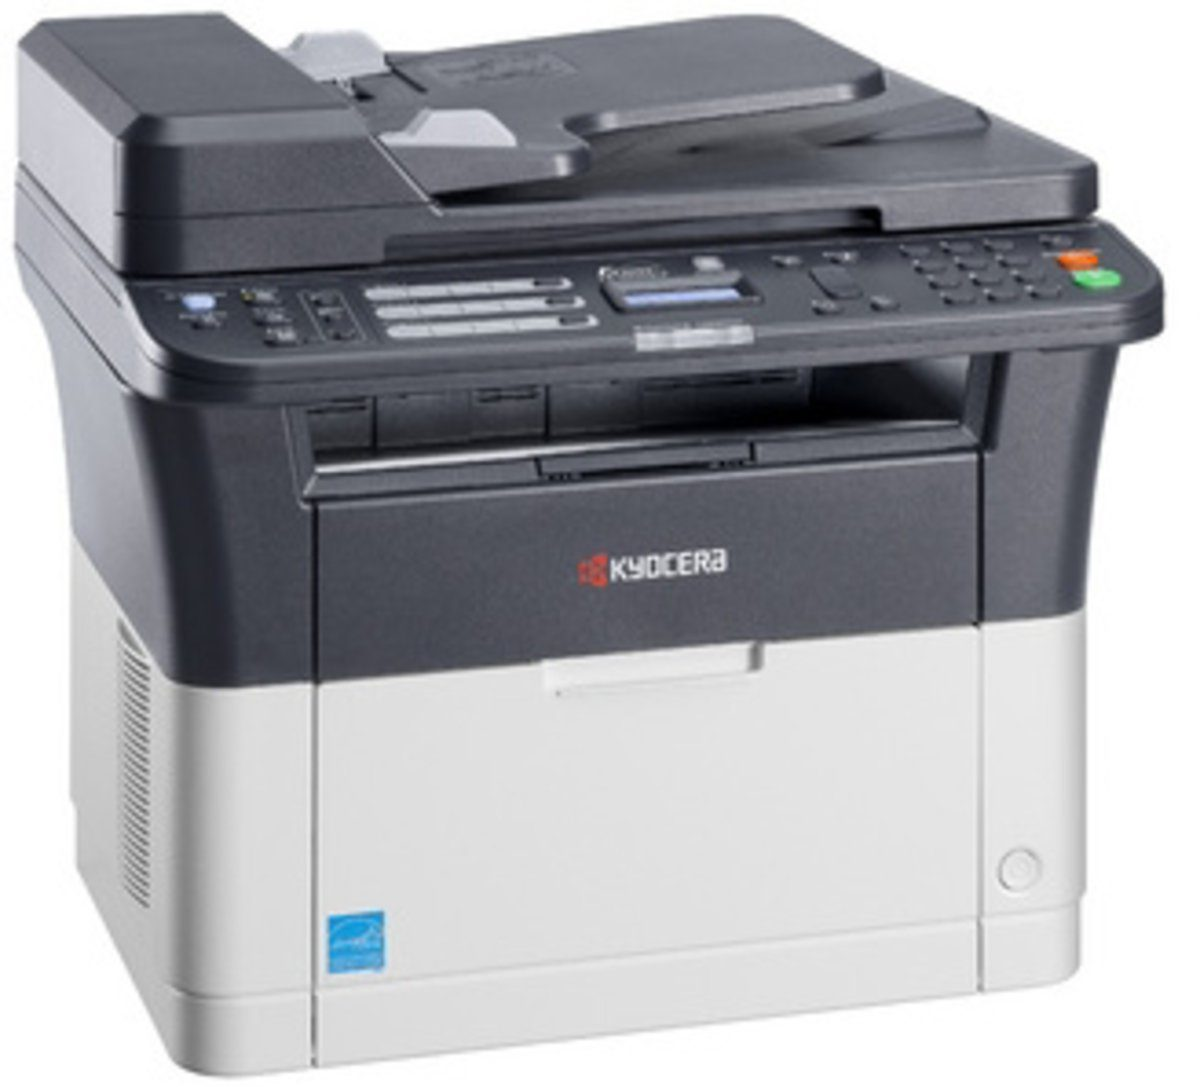 Kyocera Monolaser-Multifunktionsdrucker »FS-1325MFP 4in1«